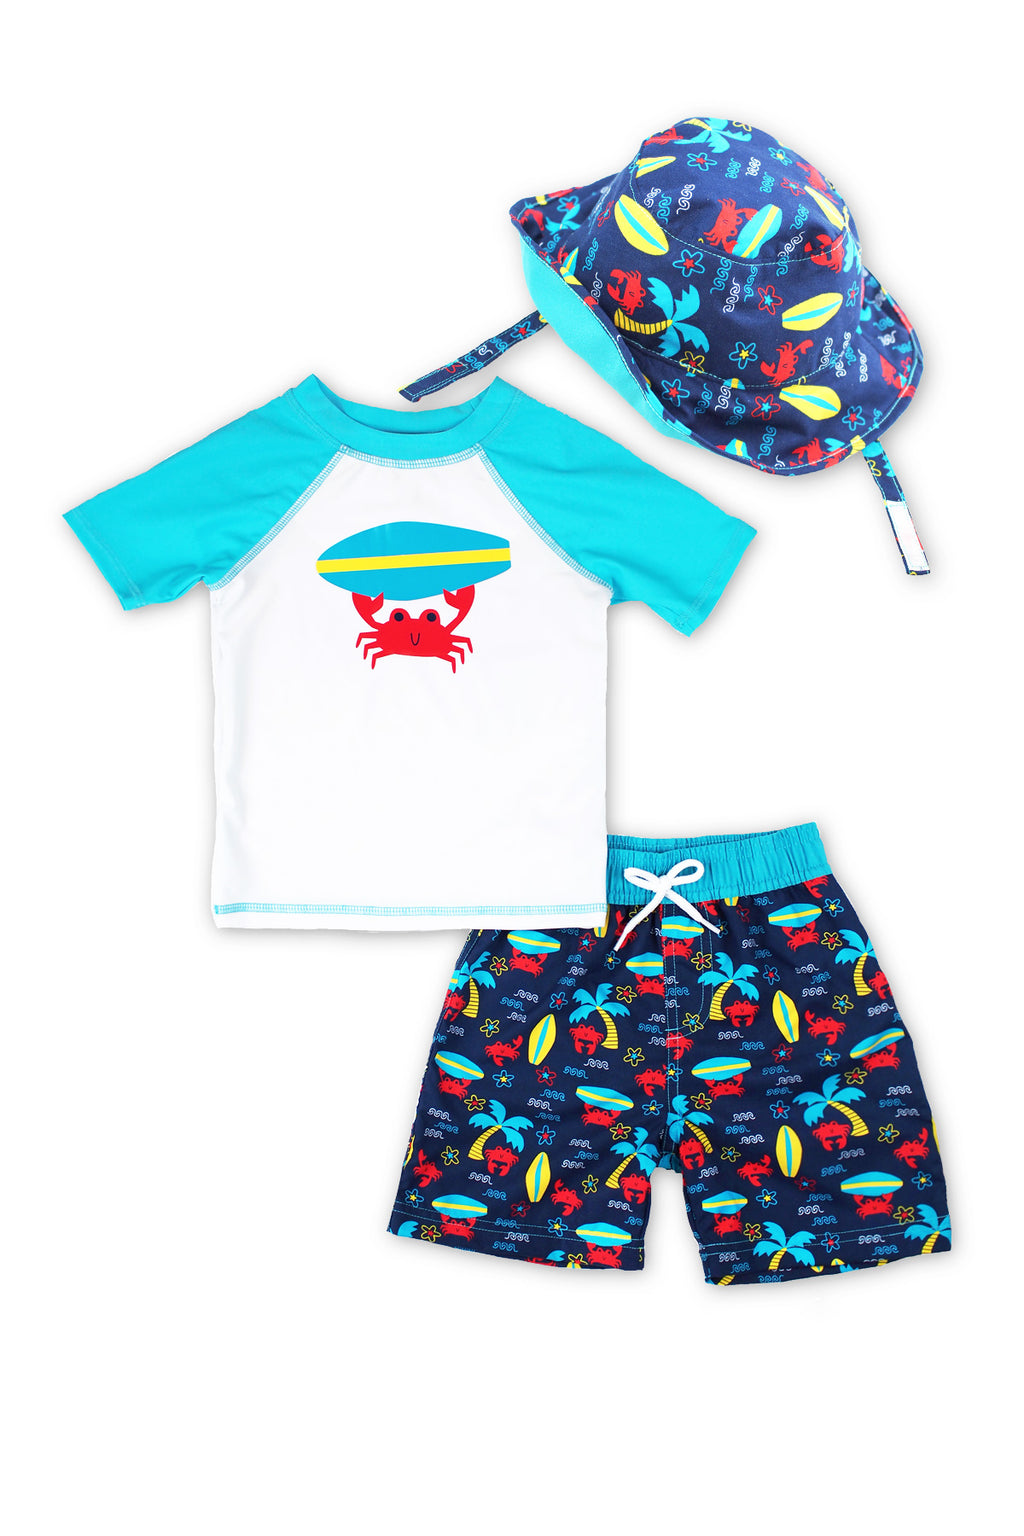 Boys Surfing Crab Short Sleeve Rash Guard & Swim Trunks With Bucket Hat 3pc Set, Turq